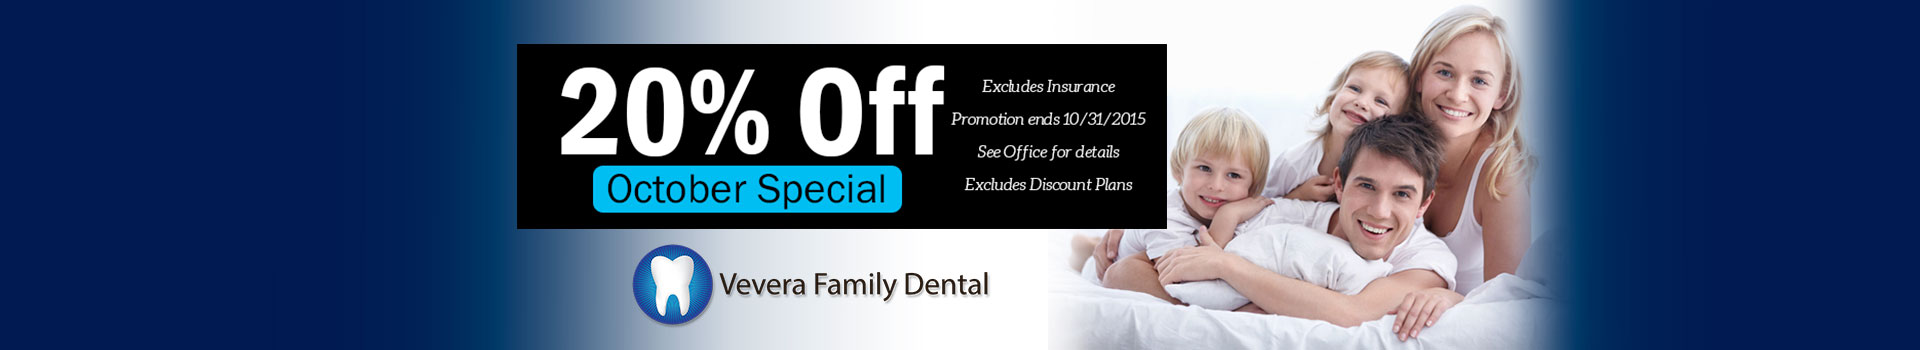 October Dental Special